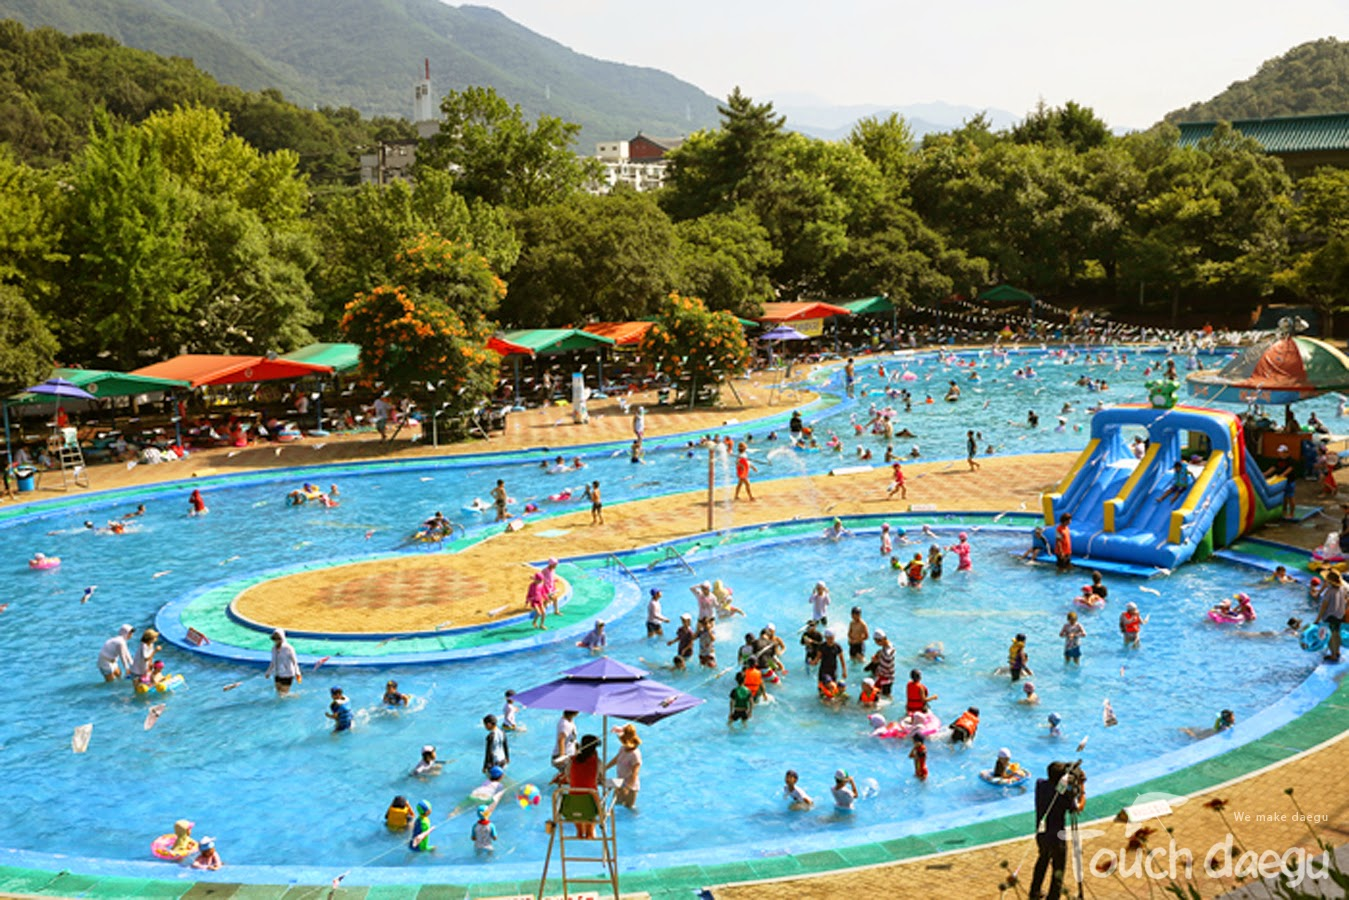 People are having fun in the Duryu outdoor swimming pool